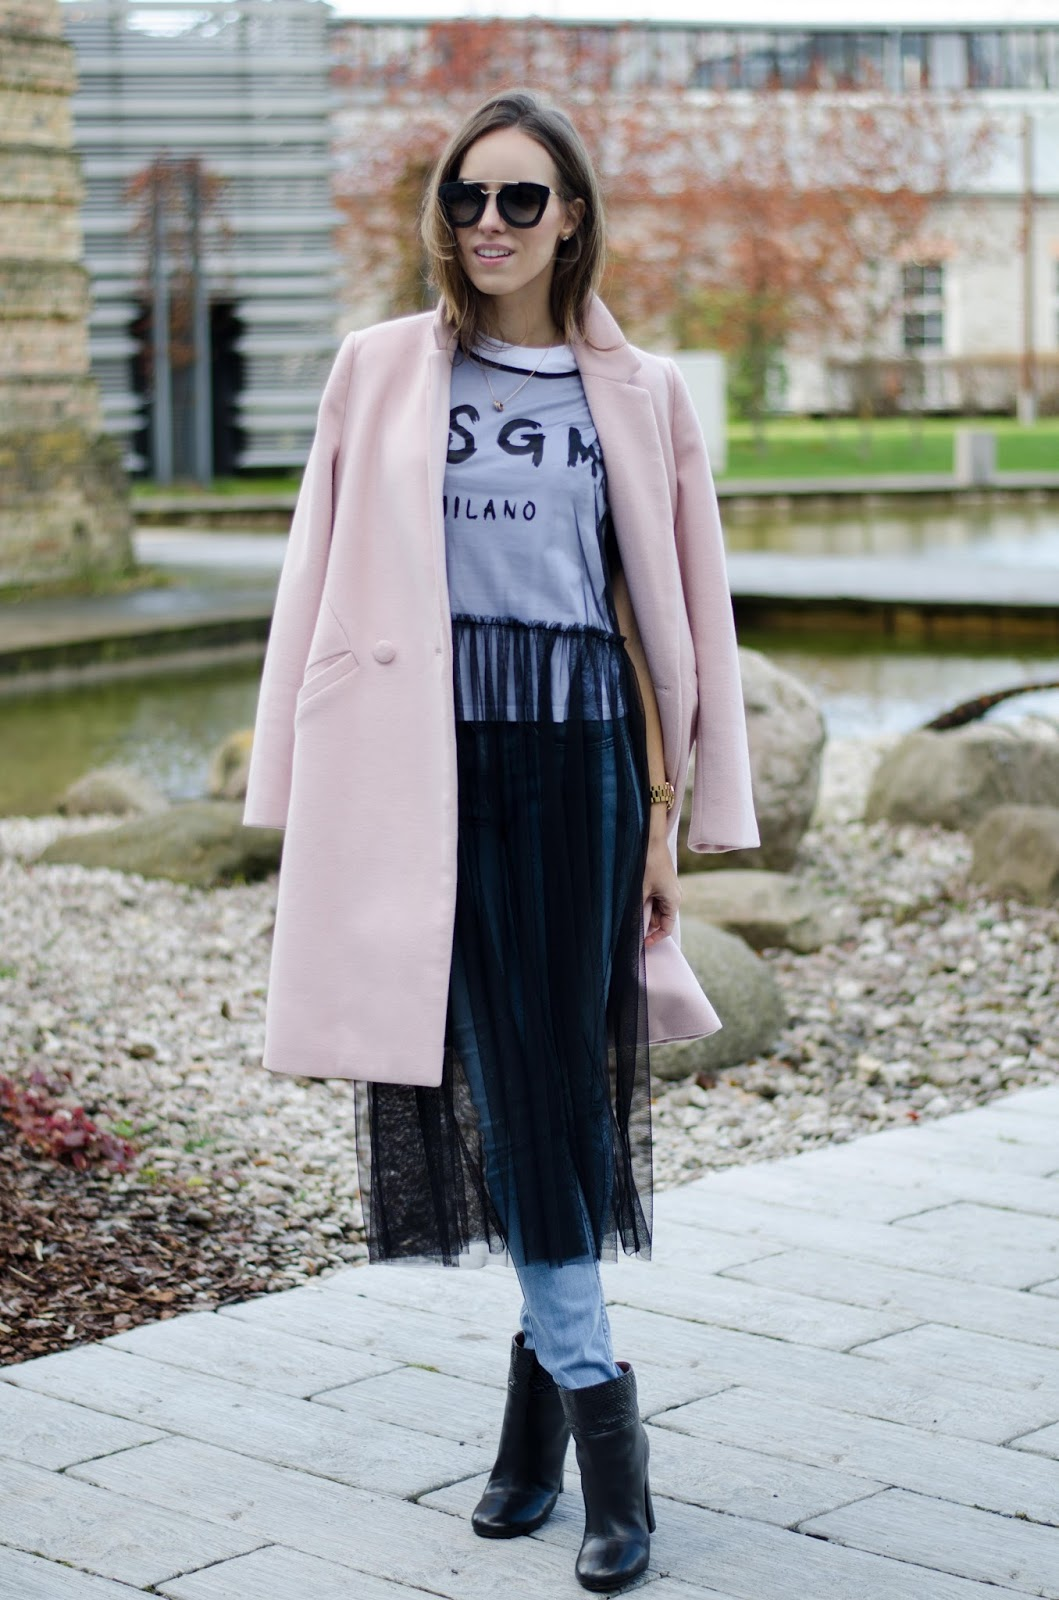 sheer tulle dress over jeans outfit